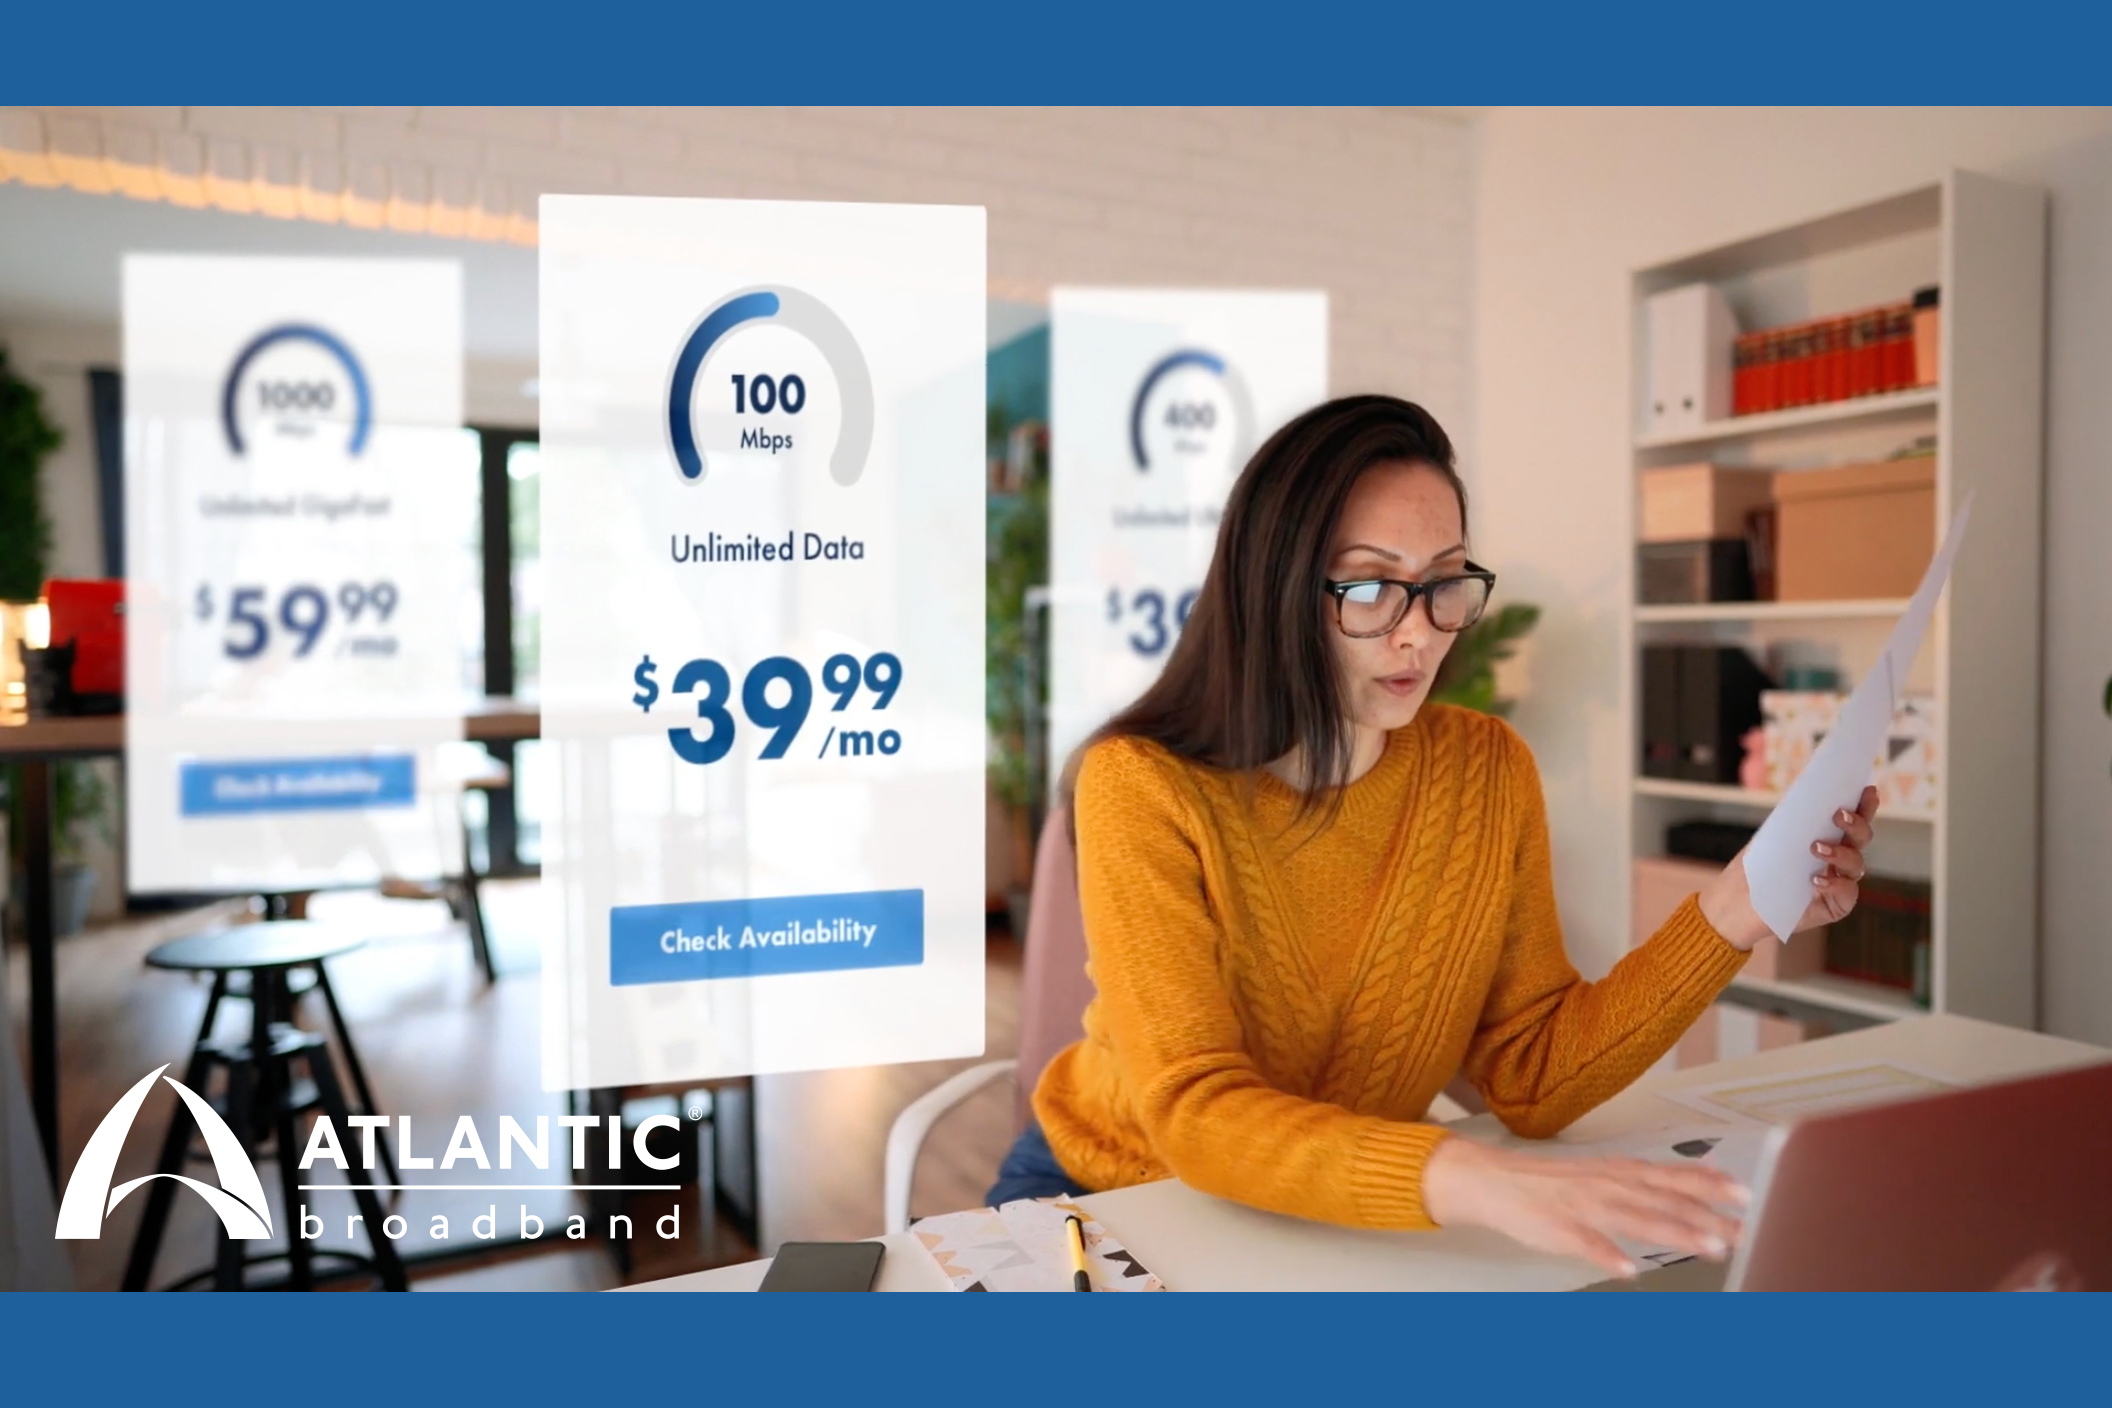 Stagwell Group wins the Atlantic Broadband business